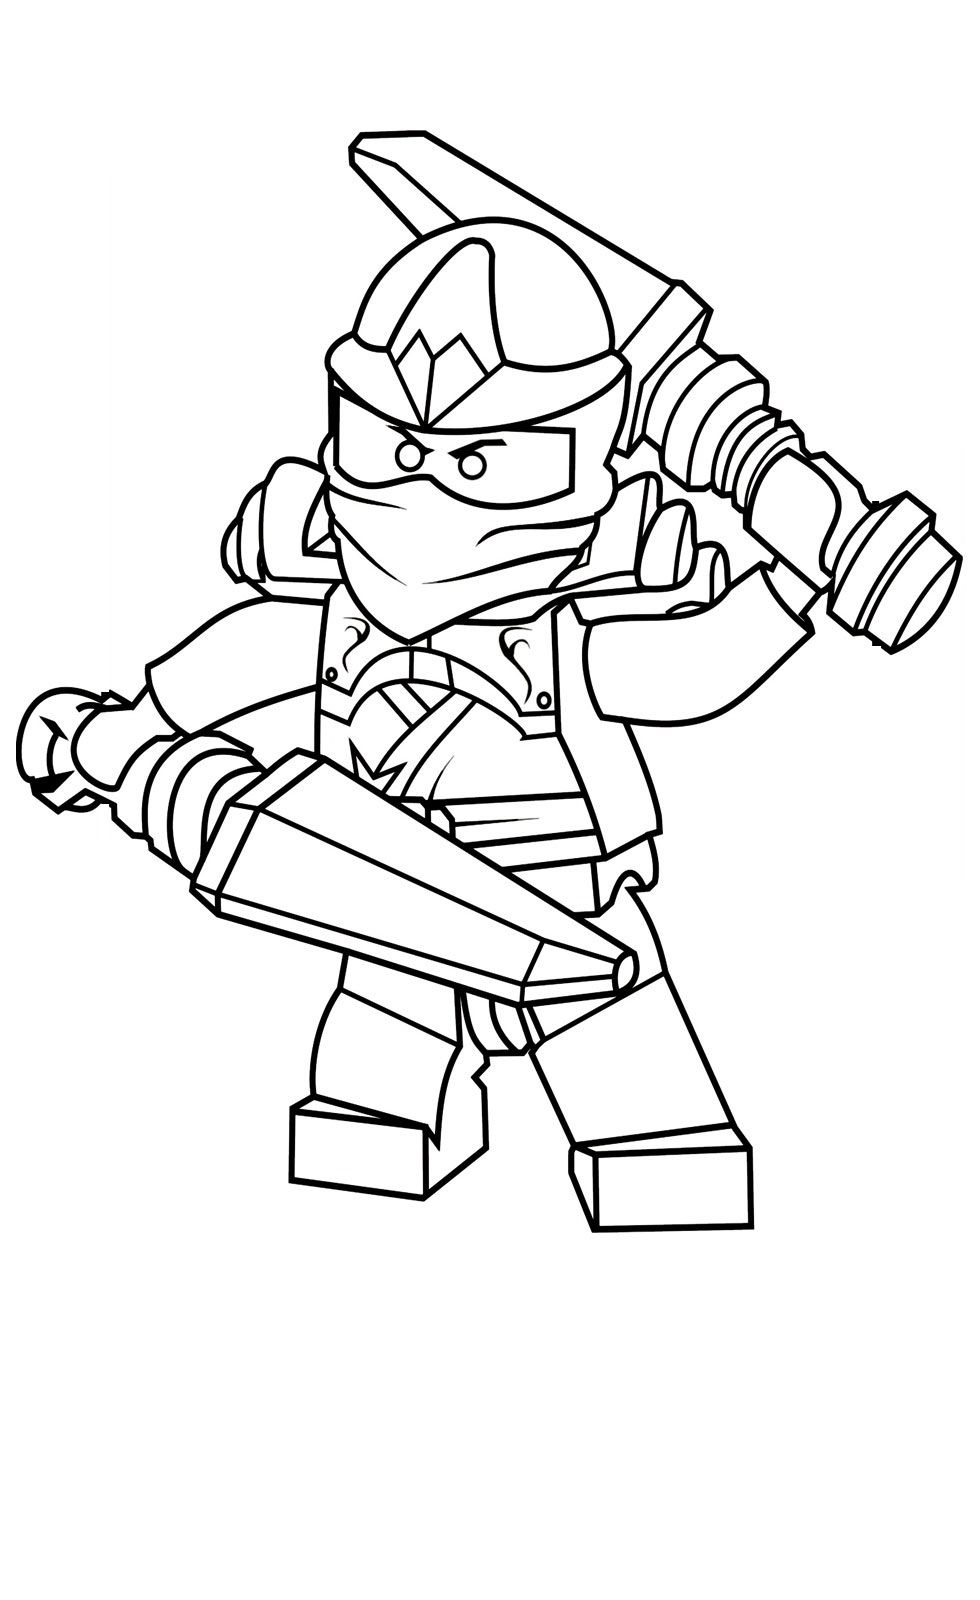 blue ninjago coloring pages free printable ninjago coloring